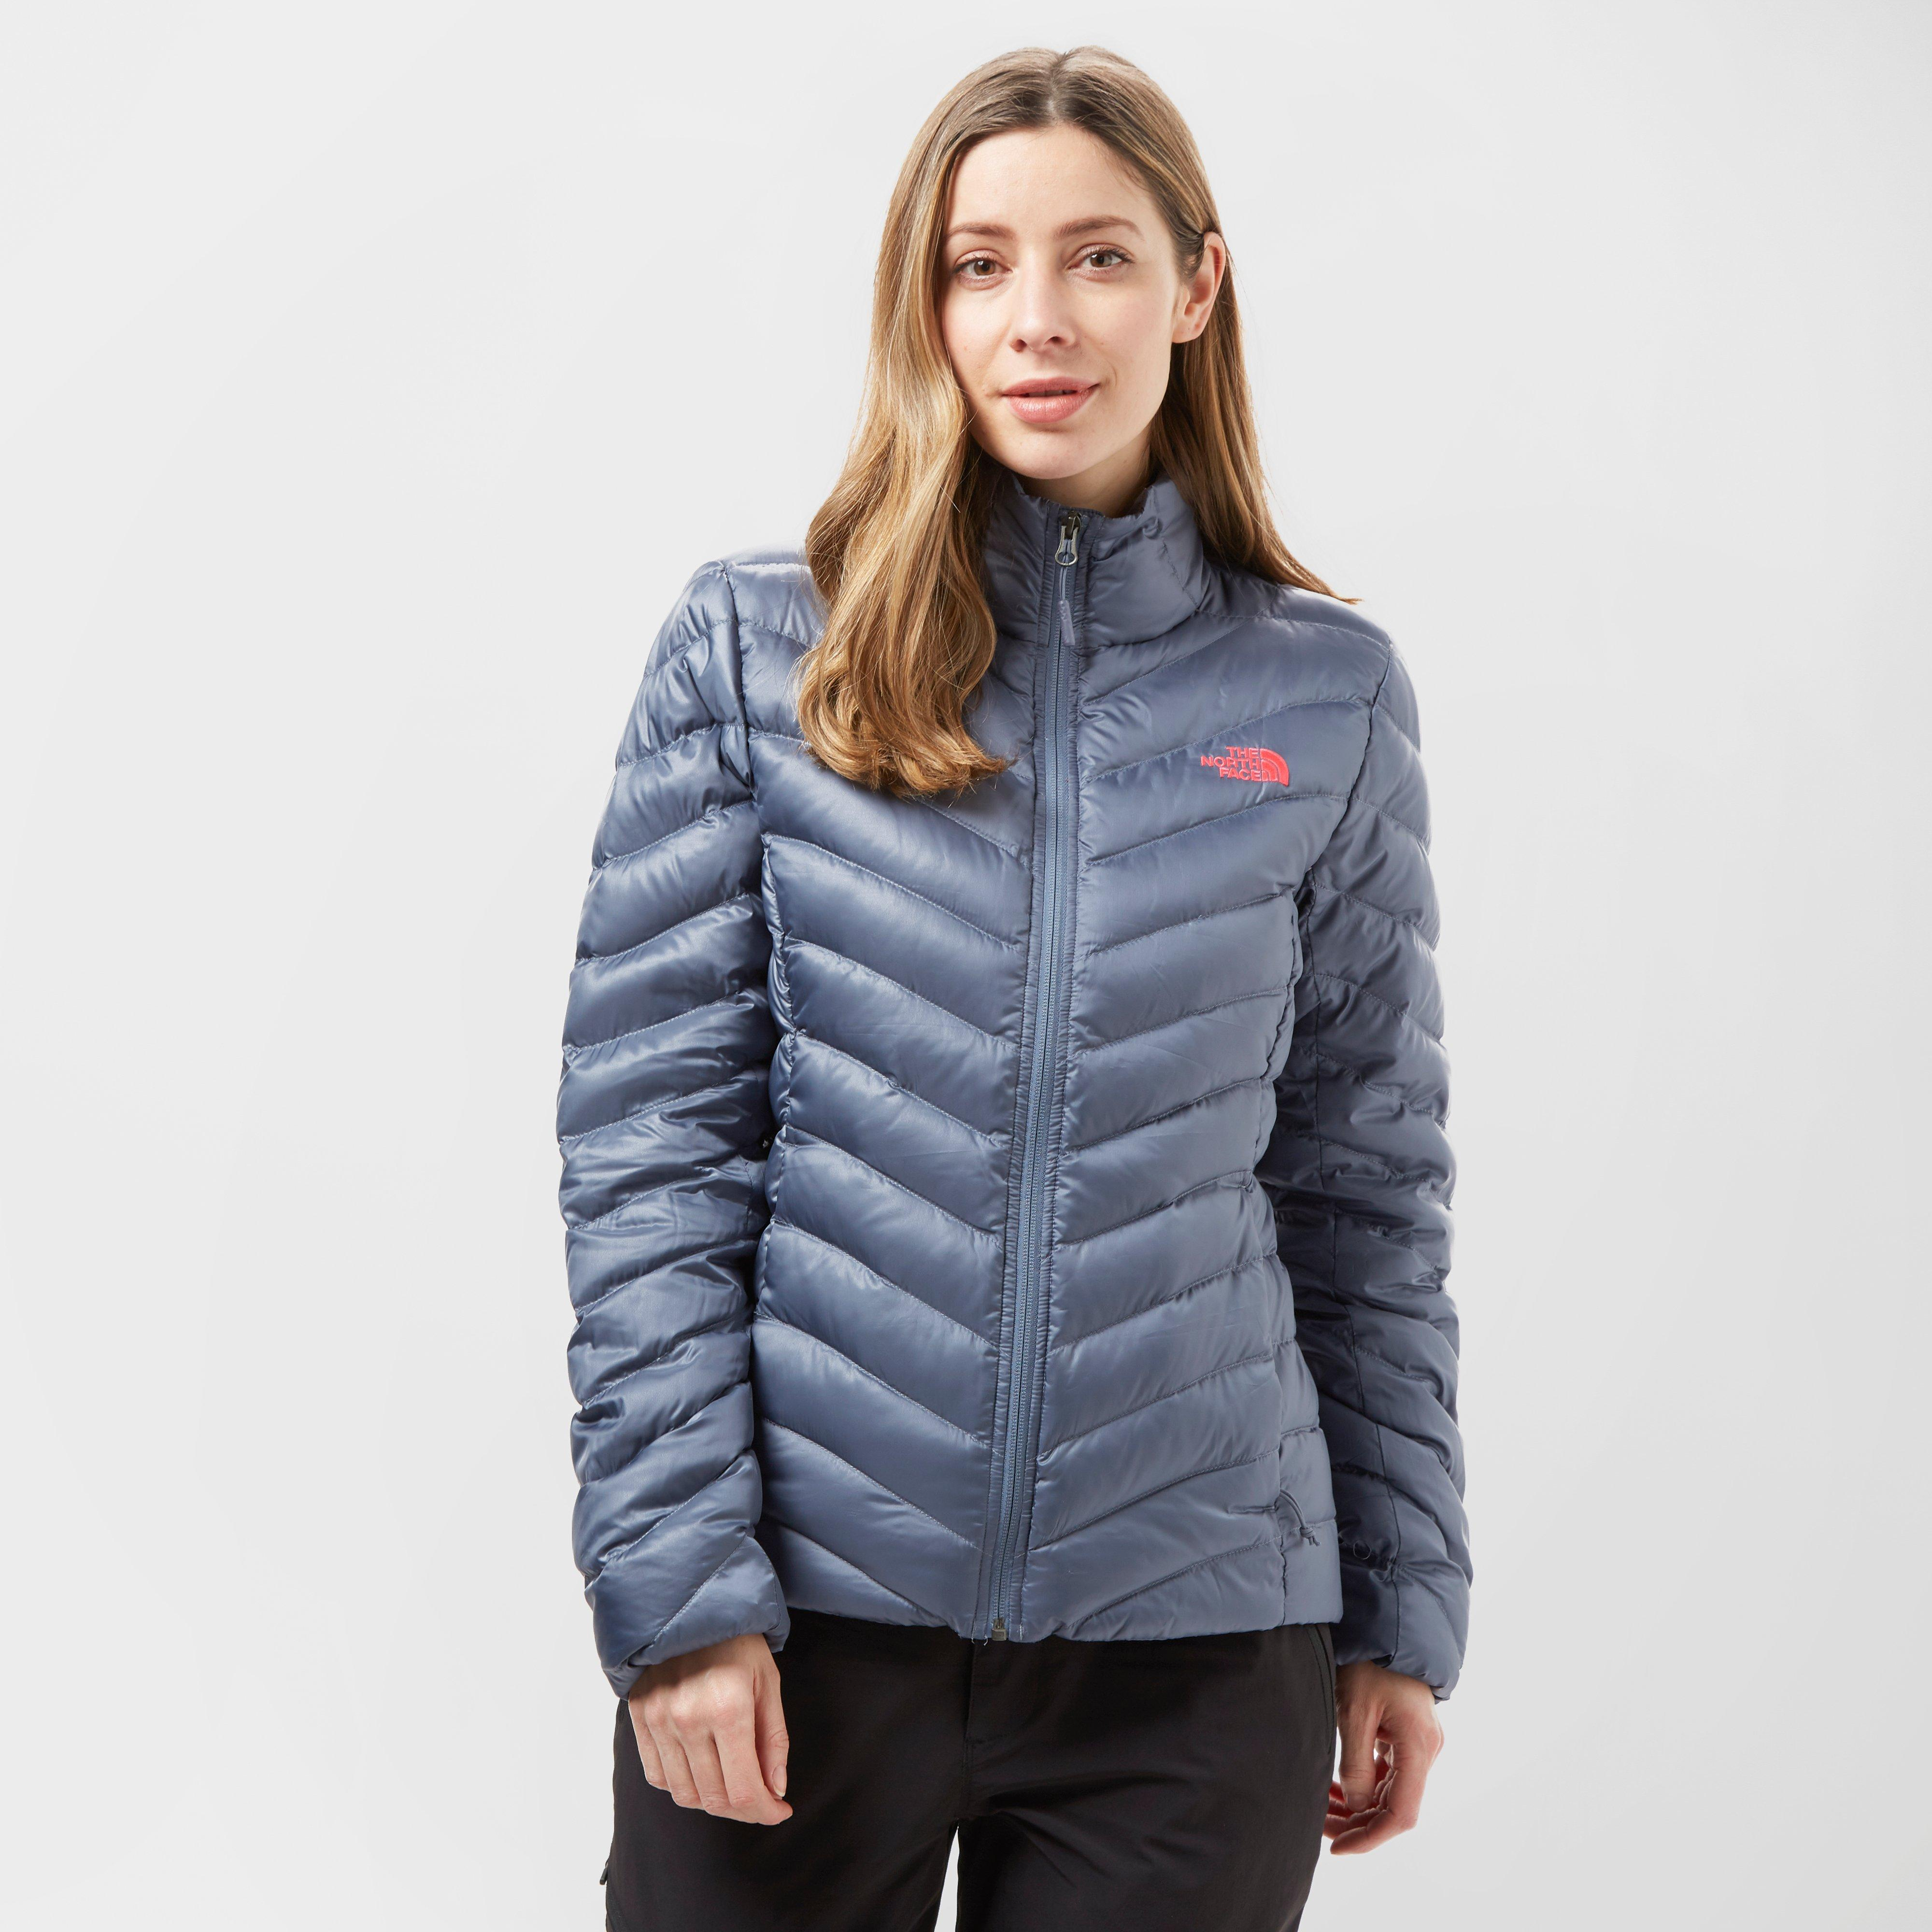 Womens Insulated & Down Jackets | Millets